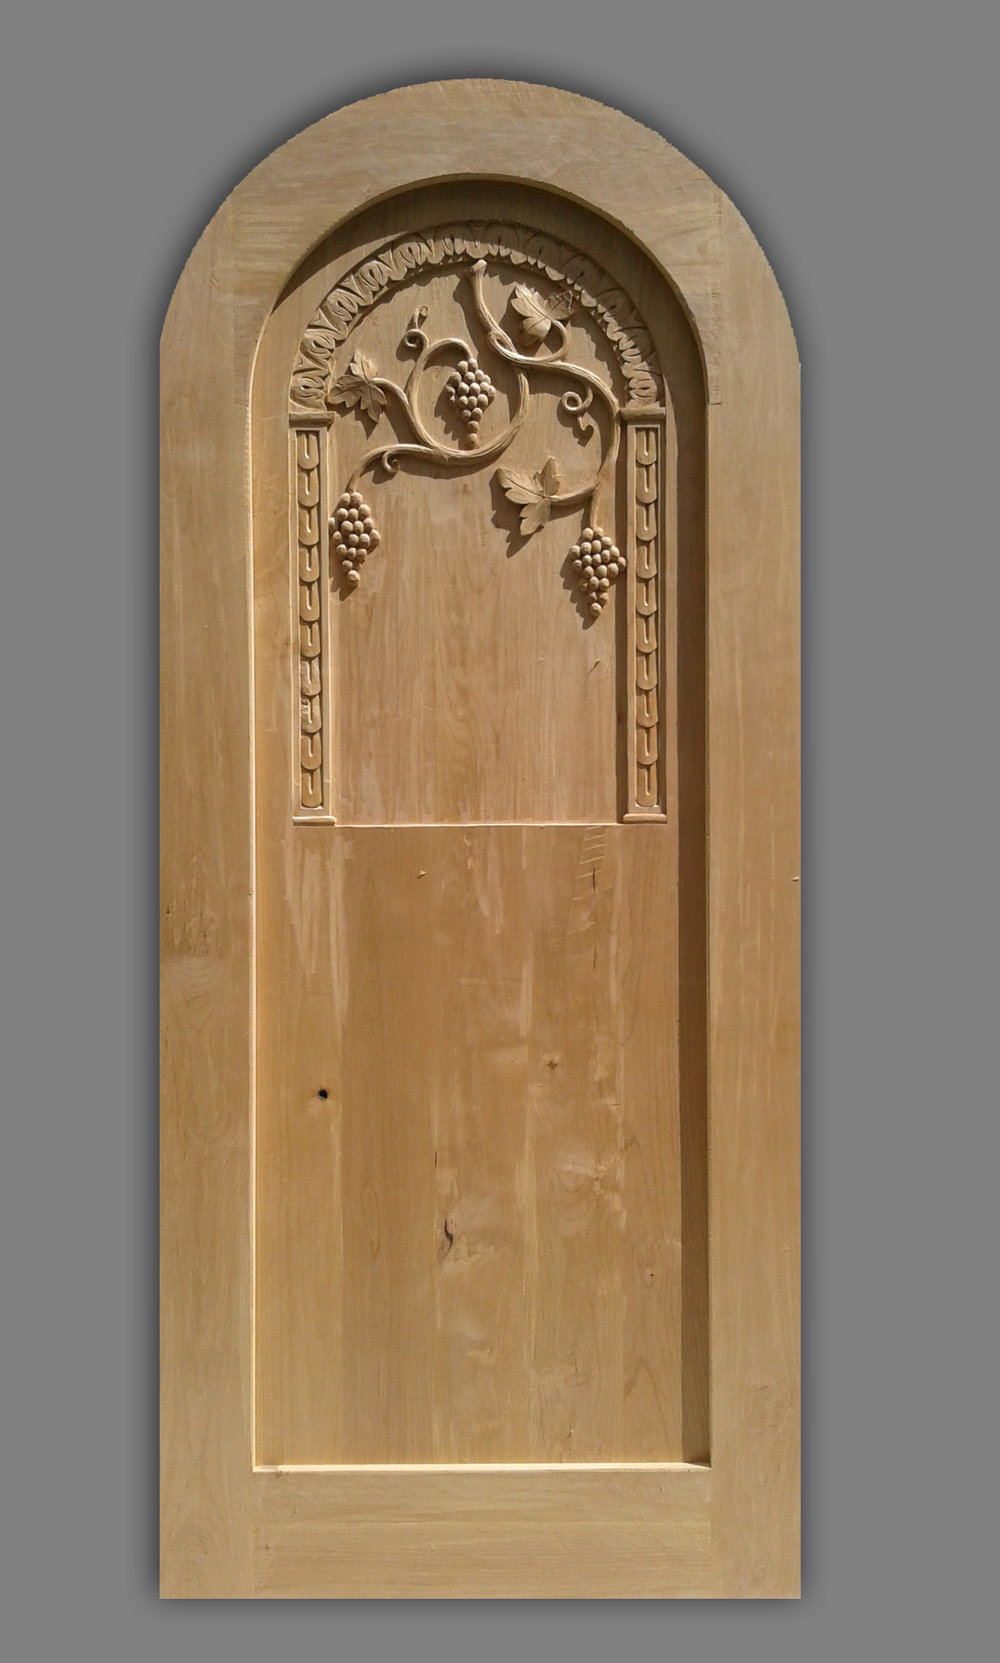 Florence, carved wood wine cellar door.